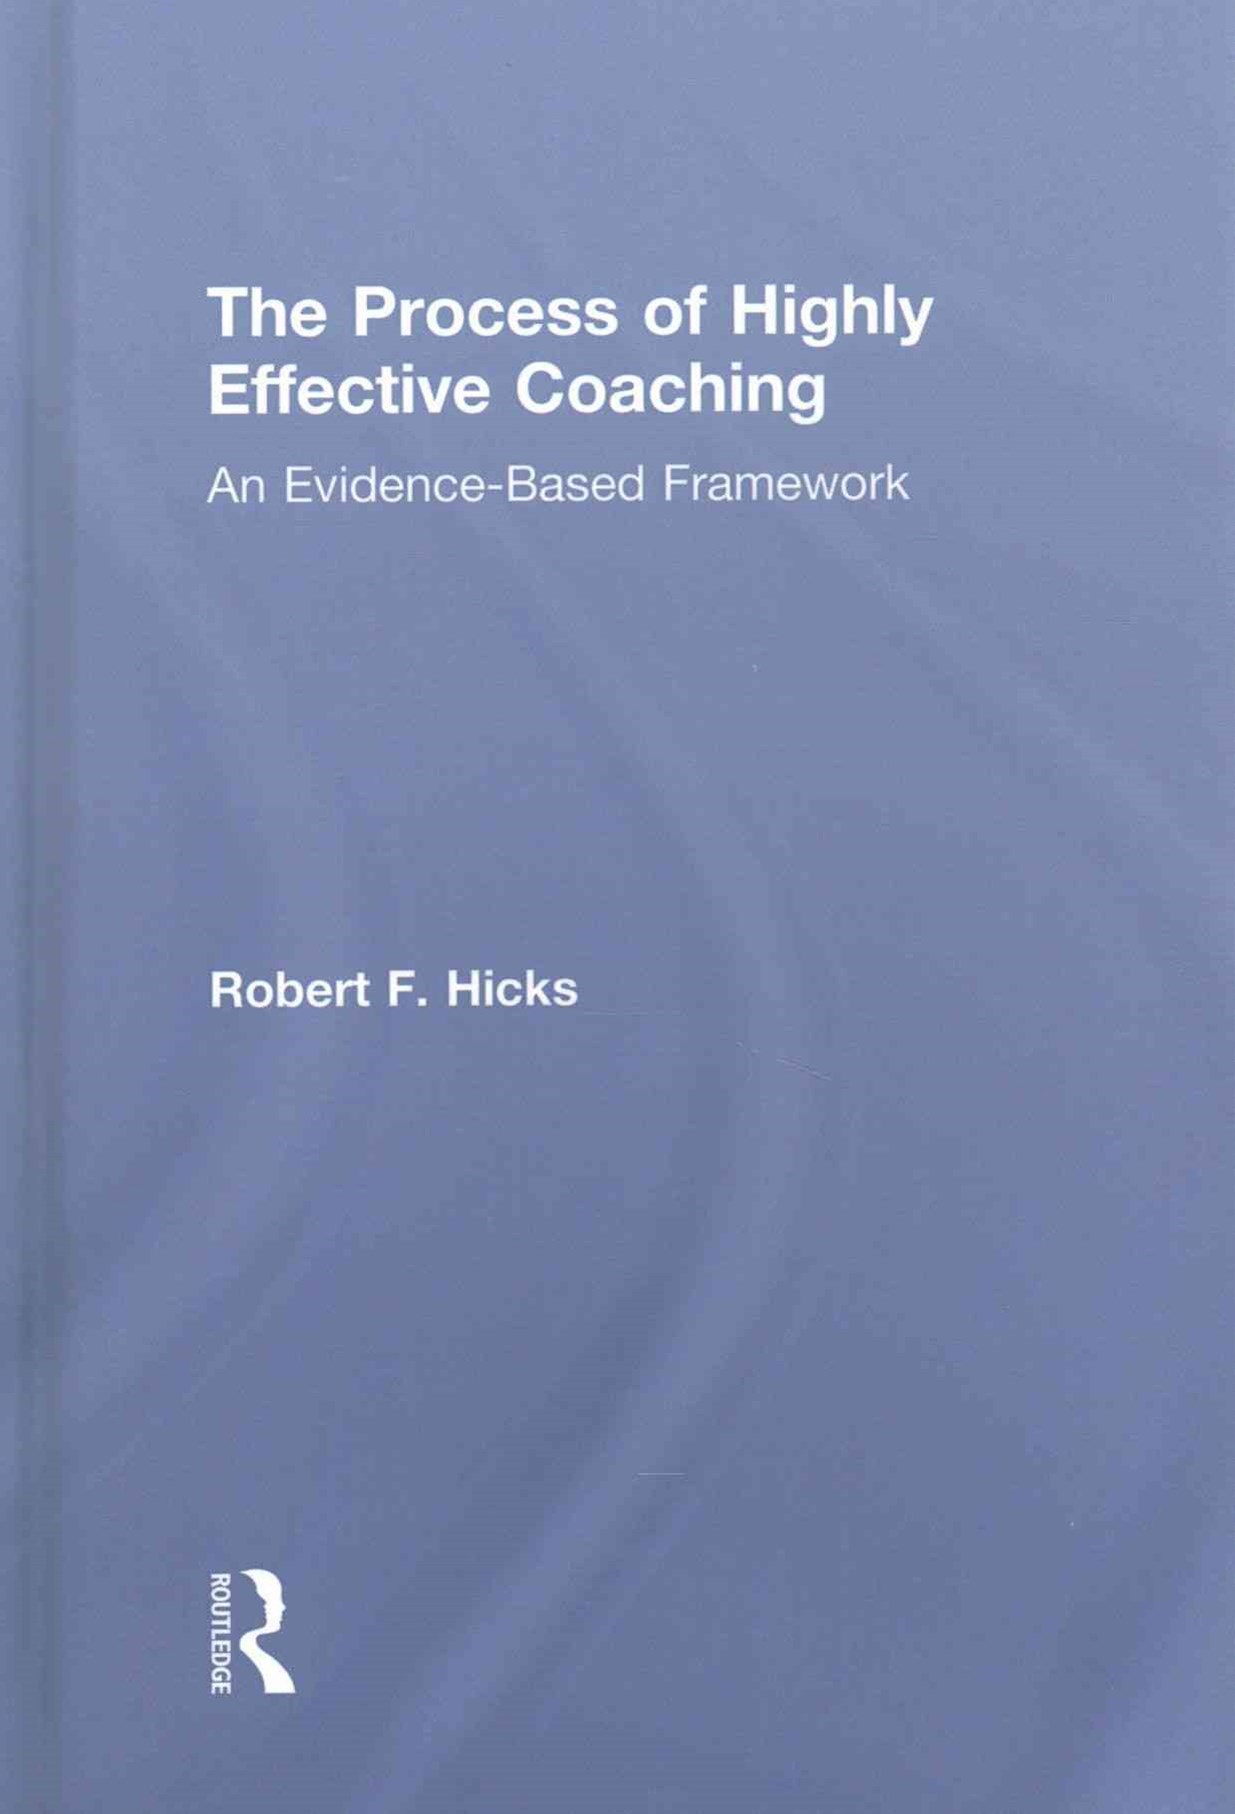 The Process of Highly Effective Coaching